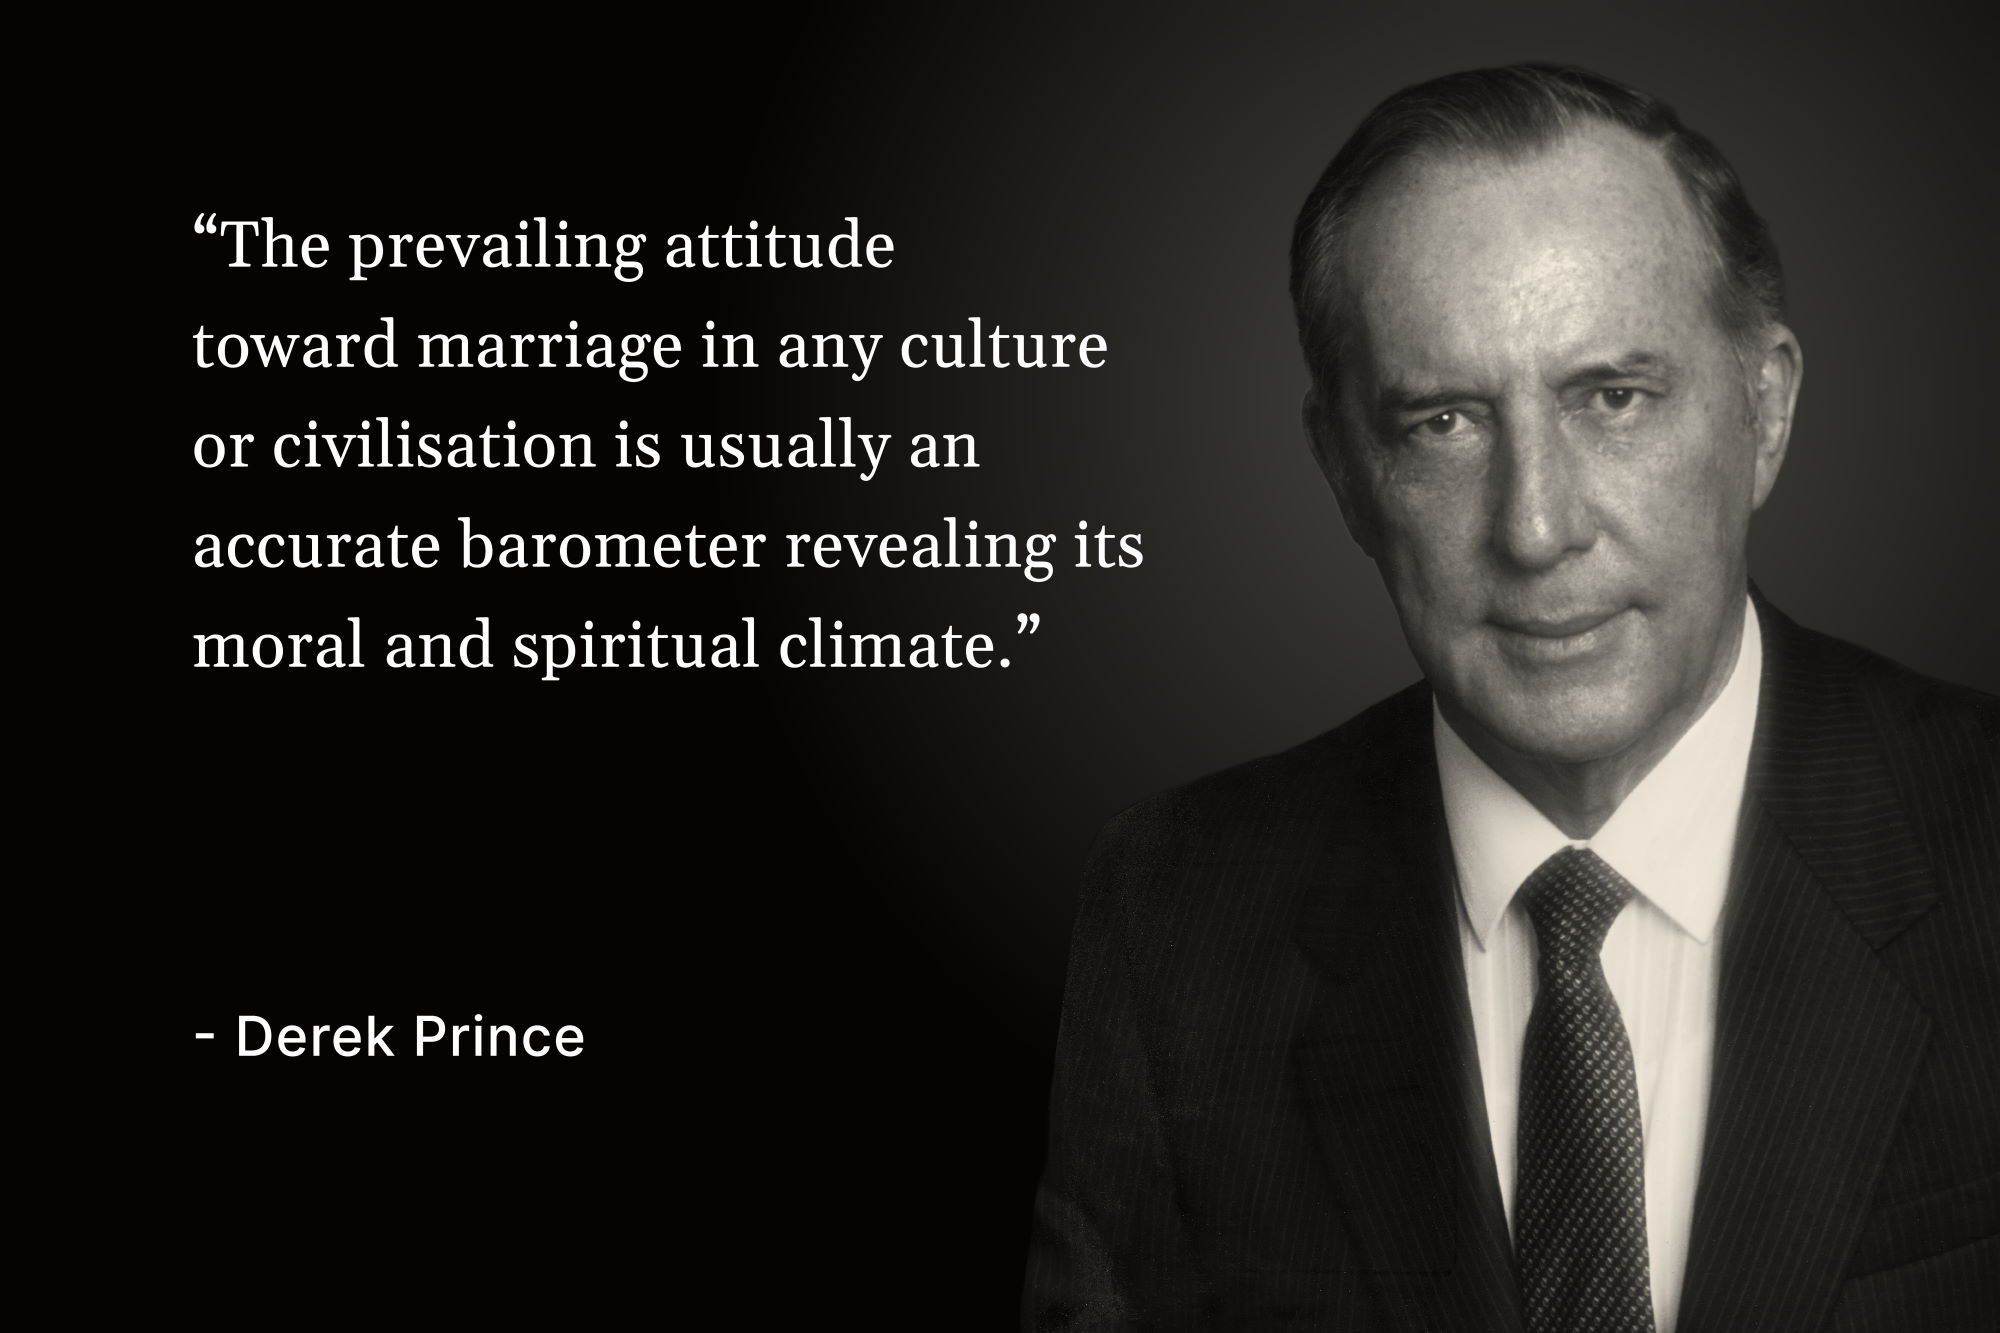 """A photo of Derek Prince with a quote that reads, """"The prevailing attitude toward marriage in any culture or civilisation is usually an accurate barometer revealing its moral and spiritual climate"""""""